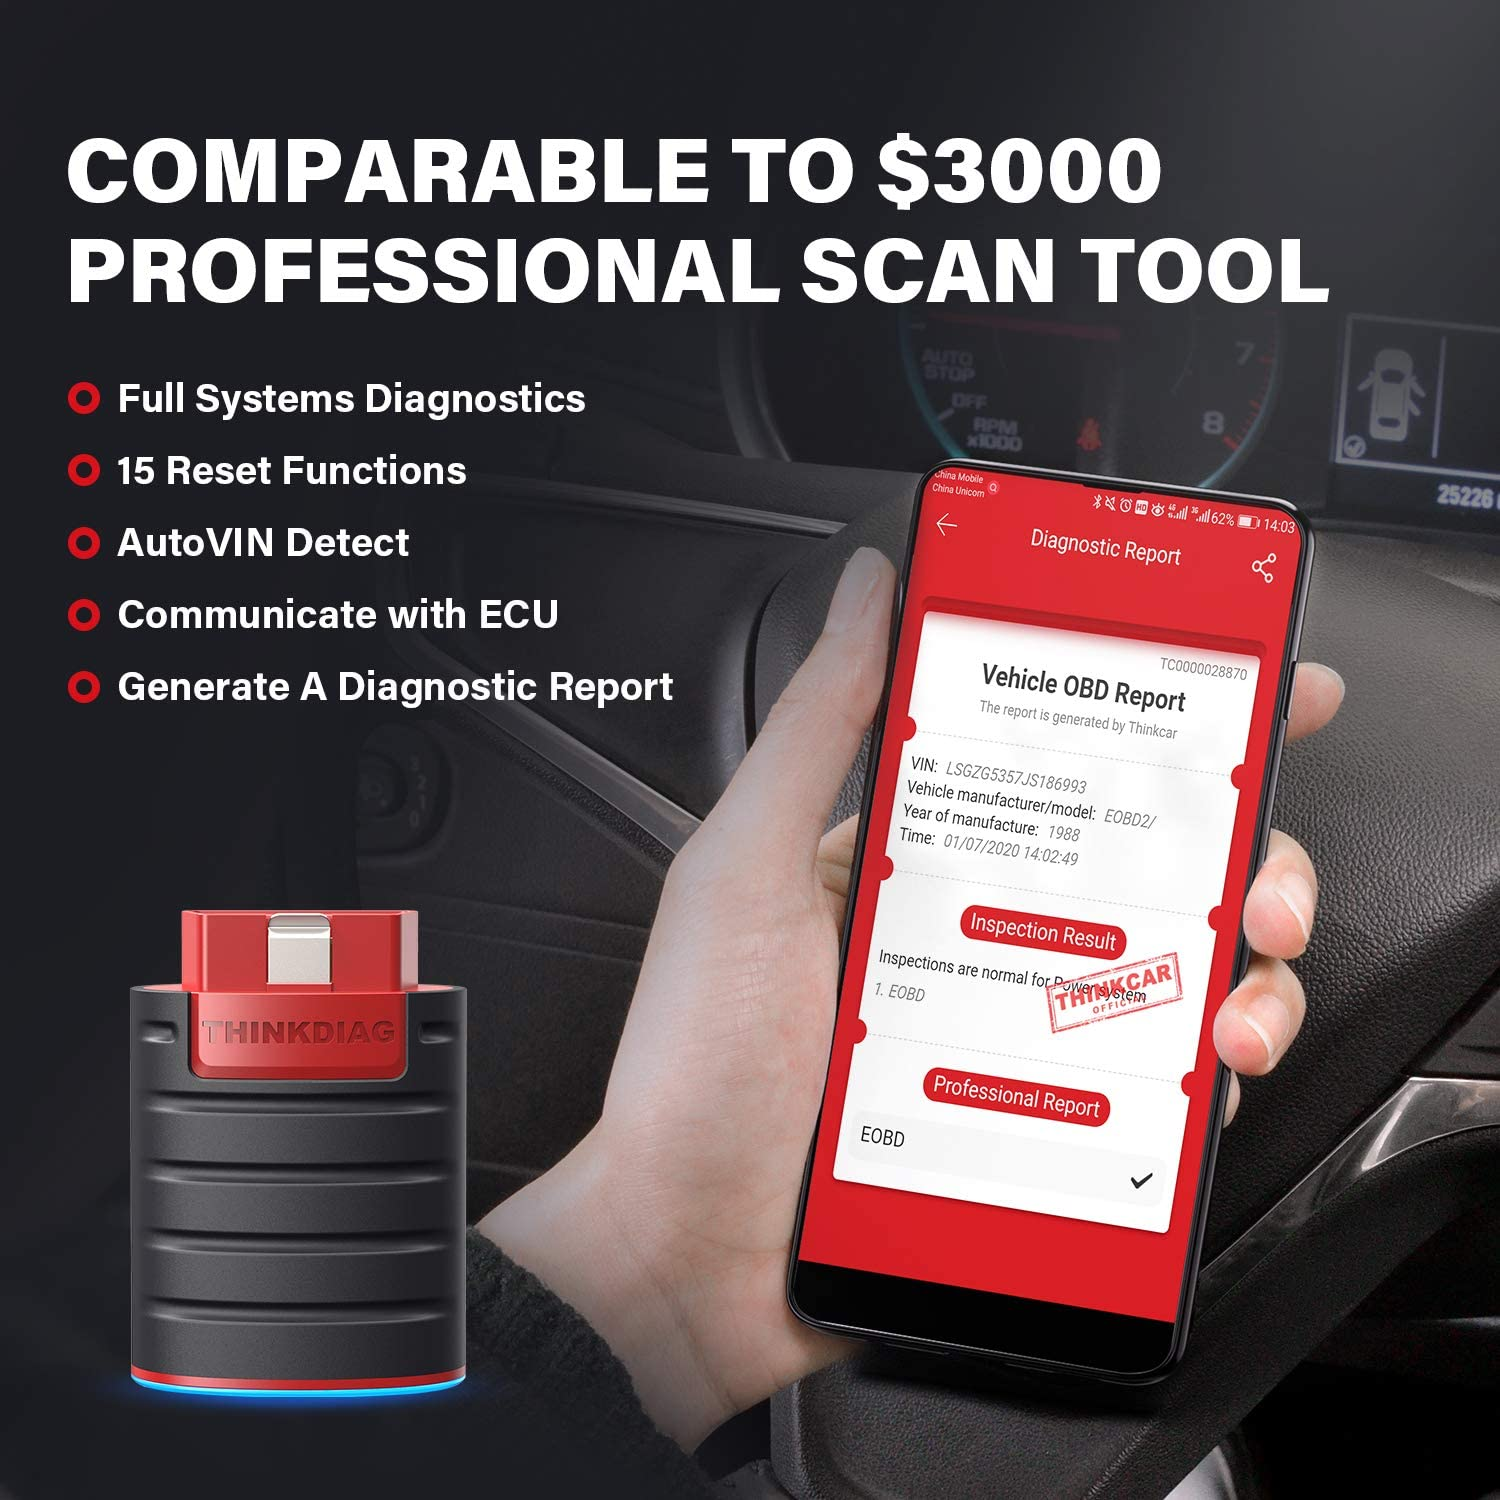 ThinkDiag Bidirectional Bluetooth OBD2 Scanner Diagnostic Scan Tool Code Reader Active Test Auto VIN for iPhone /& Android ECU Coding 16 Service Functions TPMS Activate Tool All Systems Diagnoses